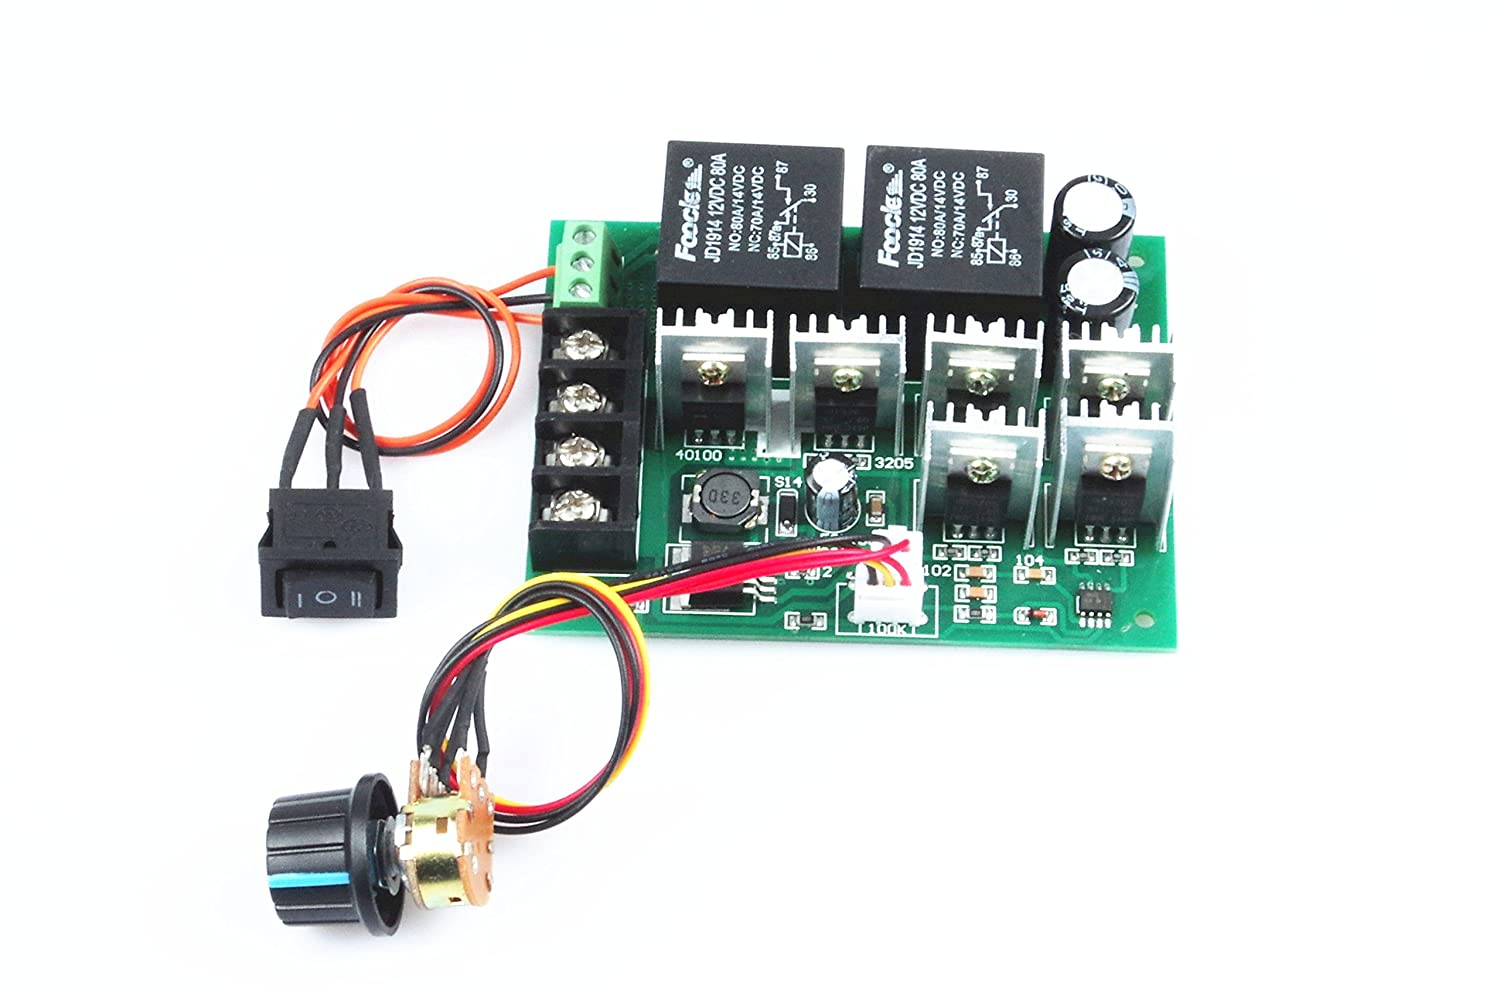 Amazon.com: KNACRO pwm speed controller PWM electronic governor 40A ...